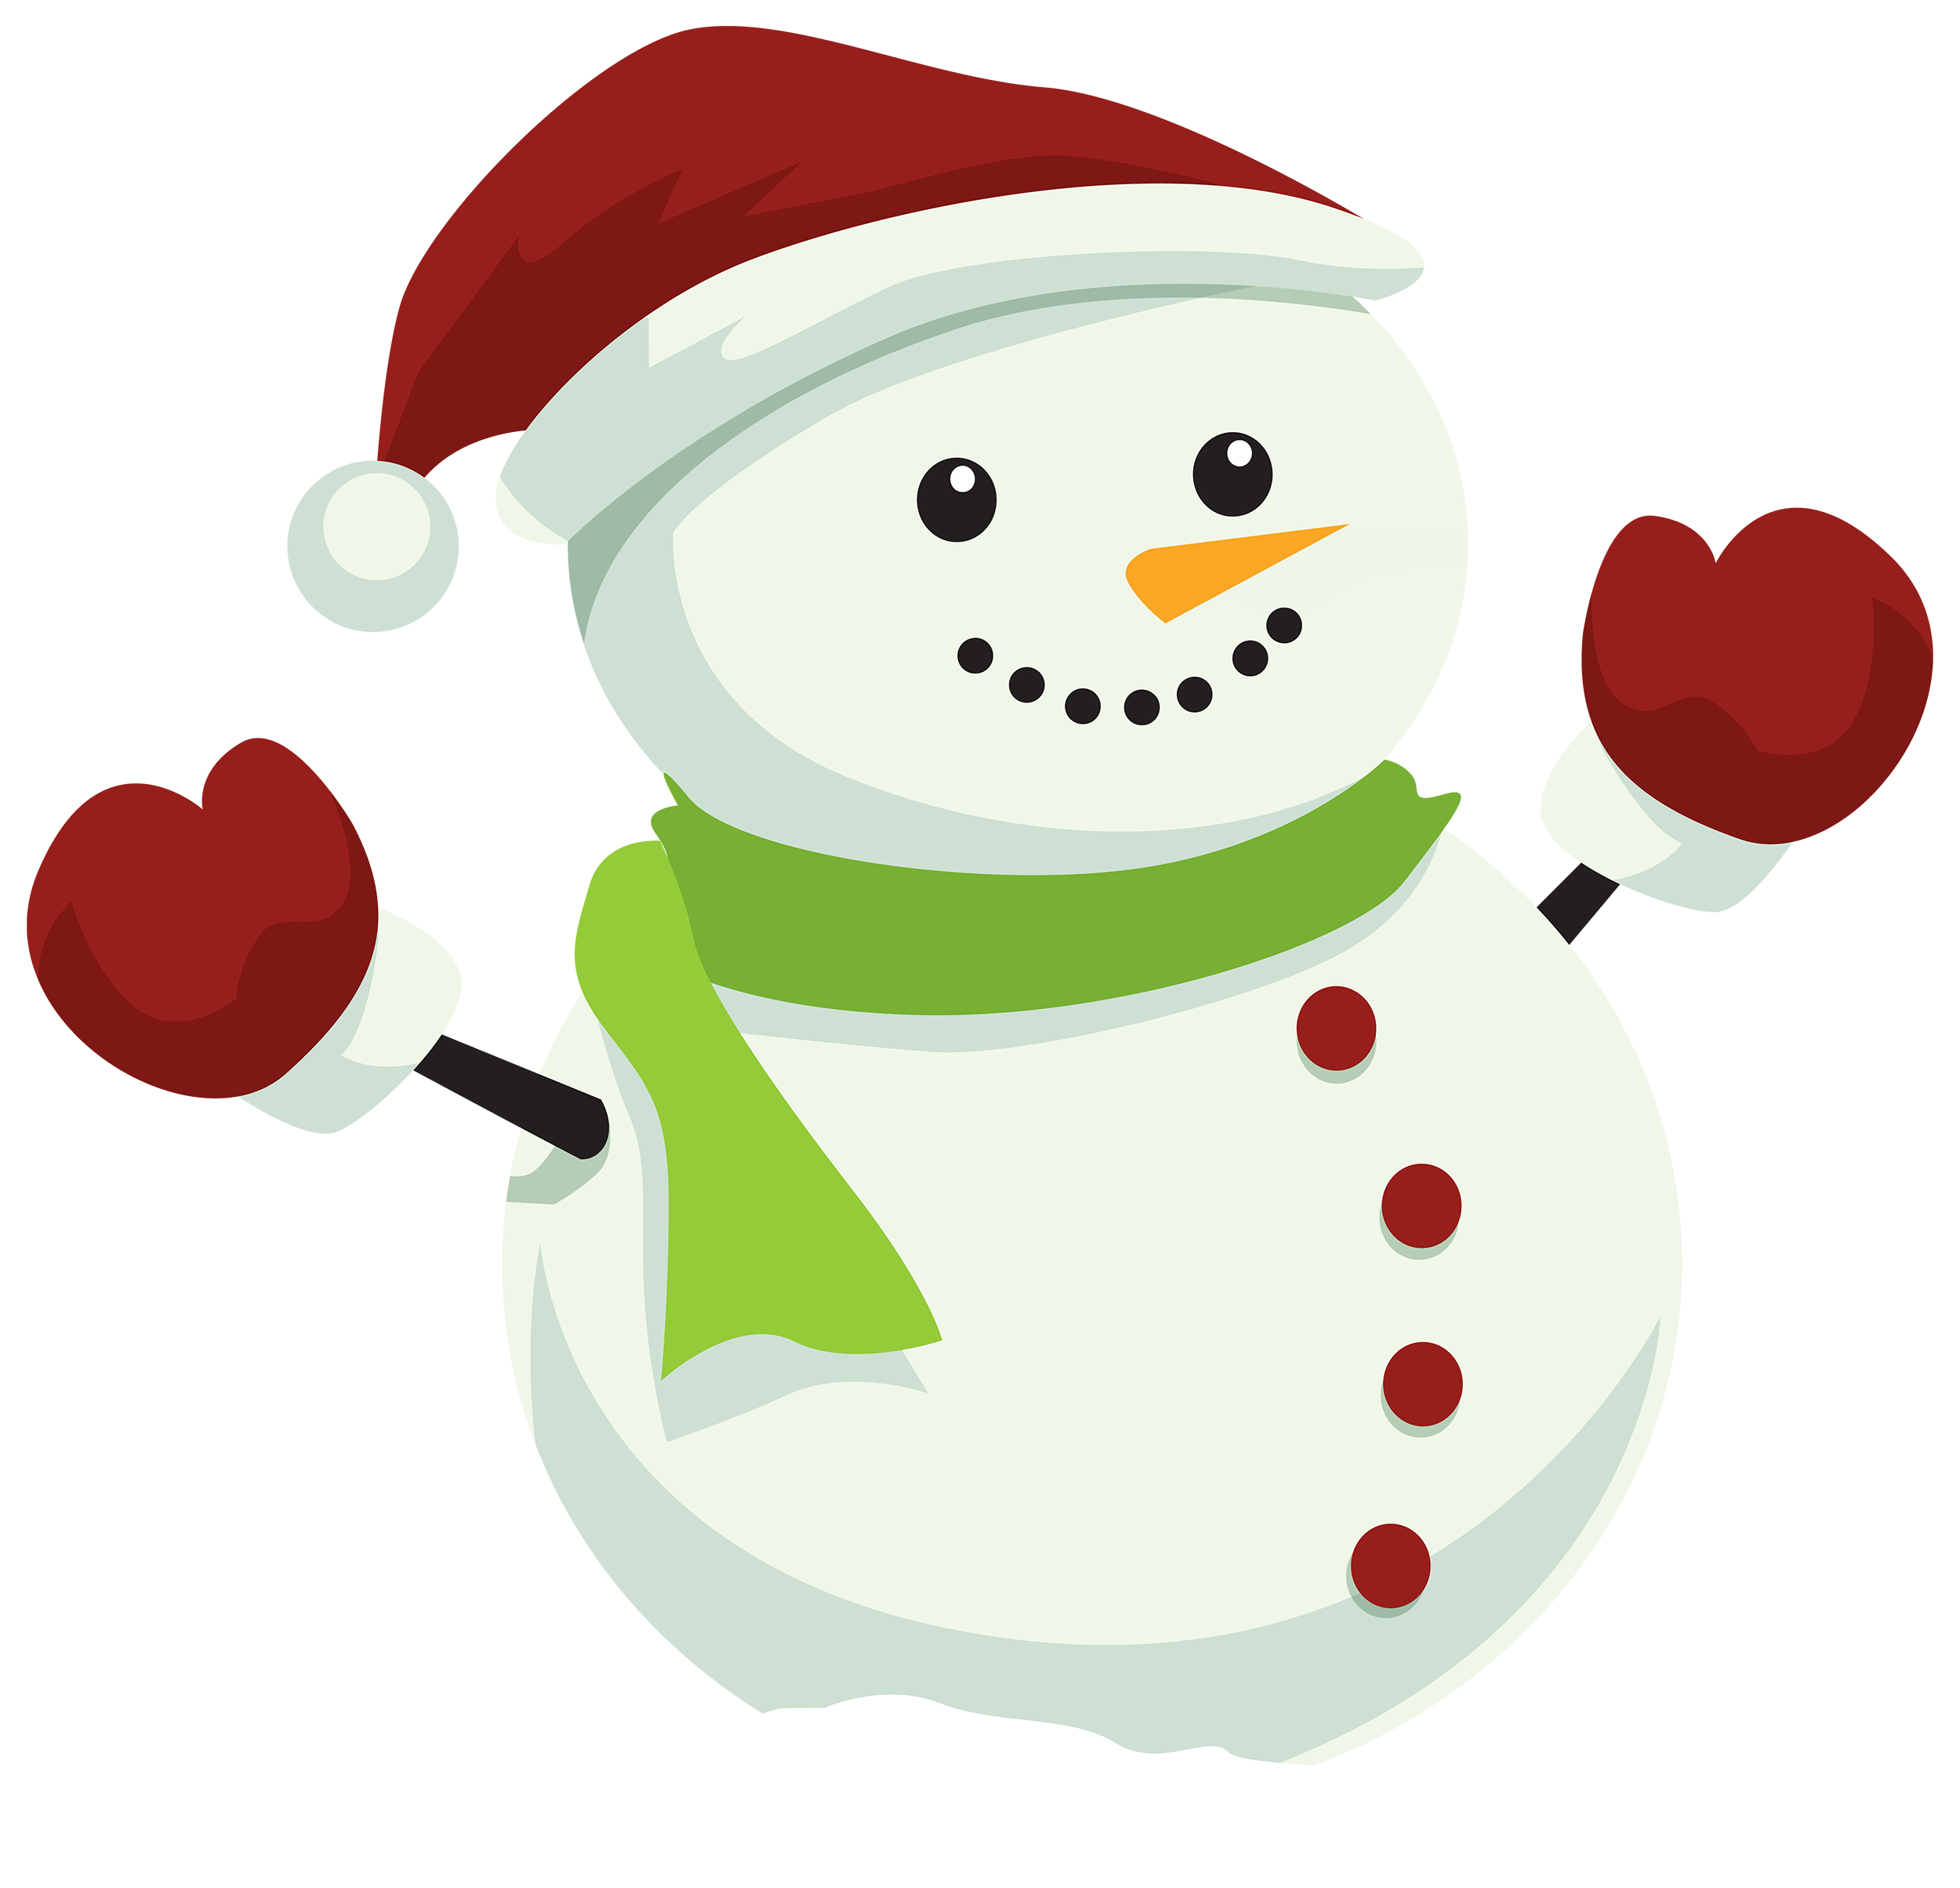 Download For Free Snowman Png In High Resolution image #30766